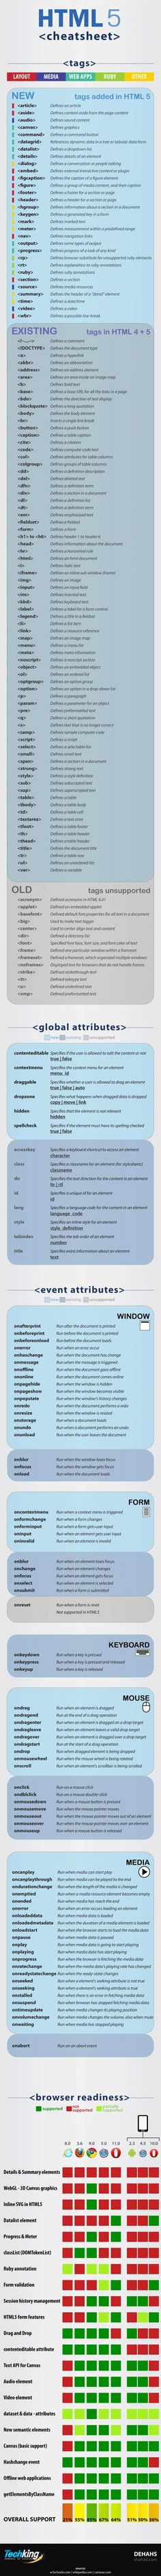 Check out http://arduinohq.com Ultimate #HTML5 Cheatsheet -